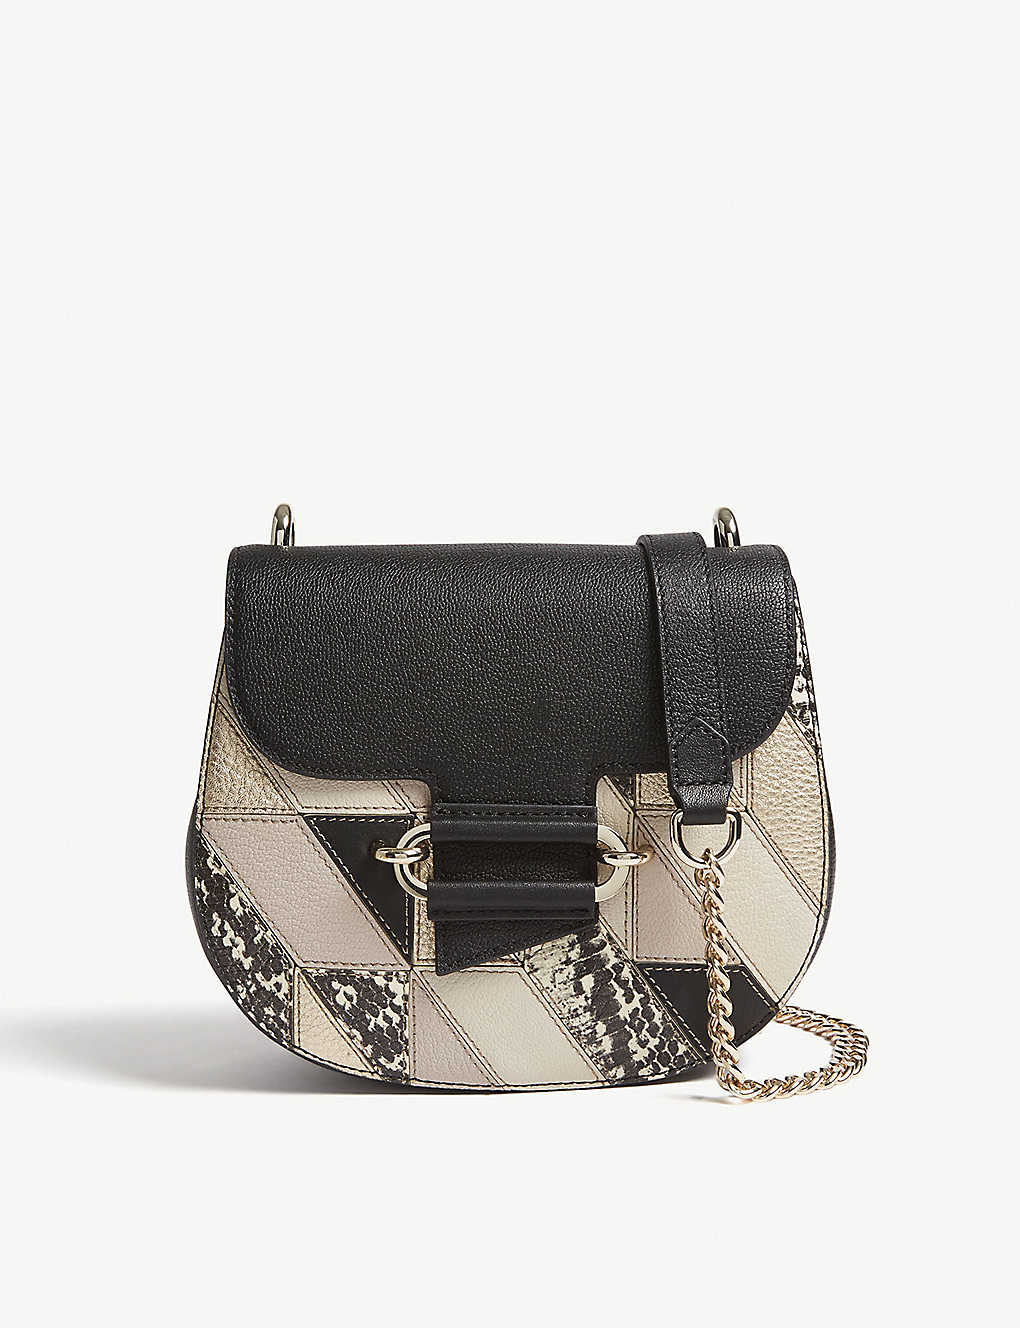 39885bced7b7 REISS - Maltby patchwork leather cross-body bag